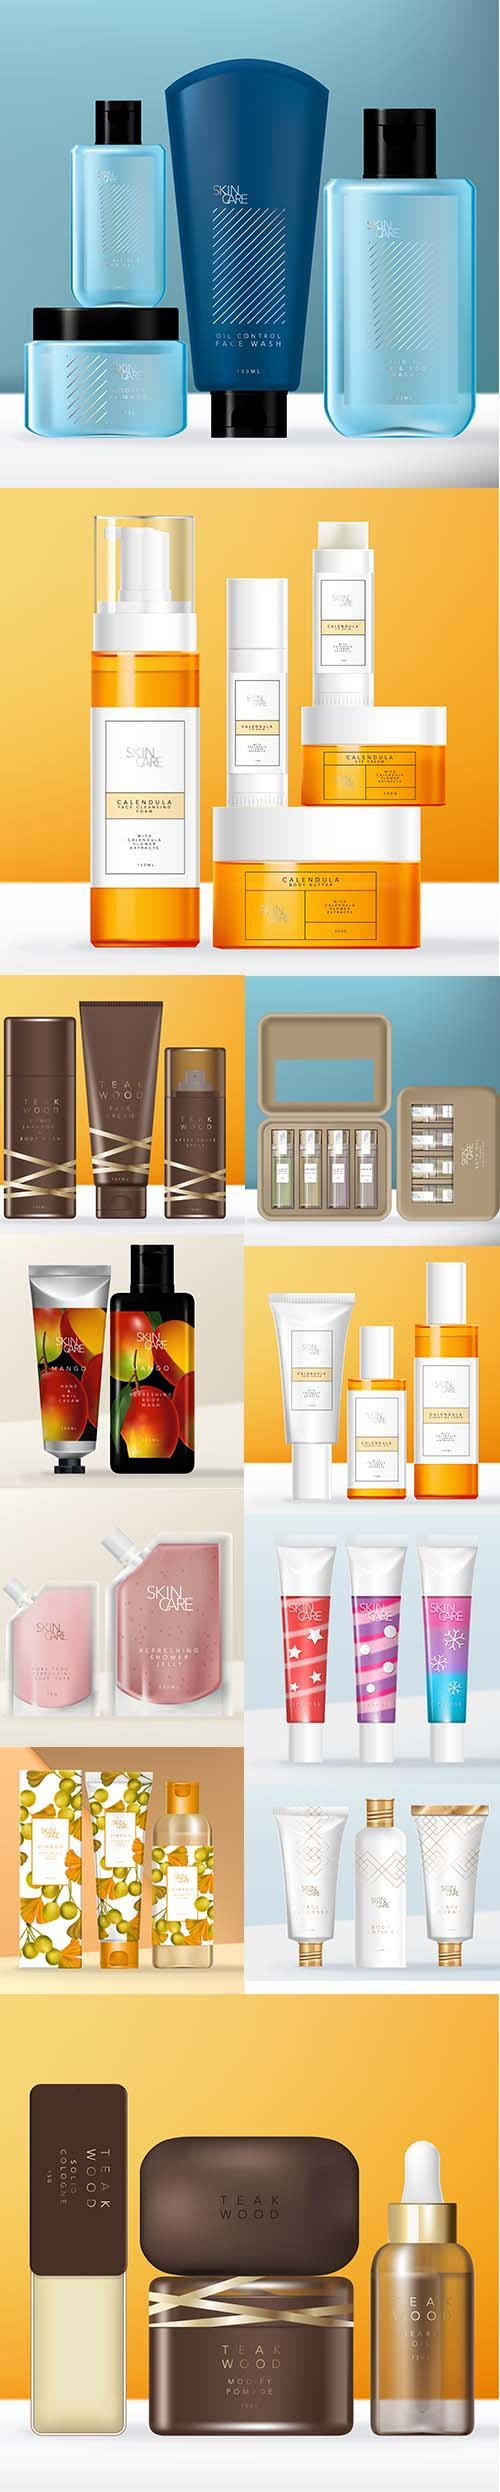 Cosmetics Packaging Collection Vector